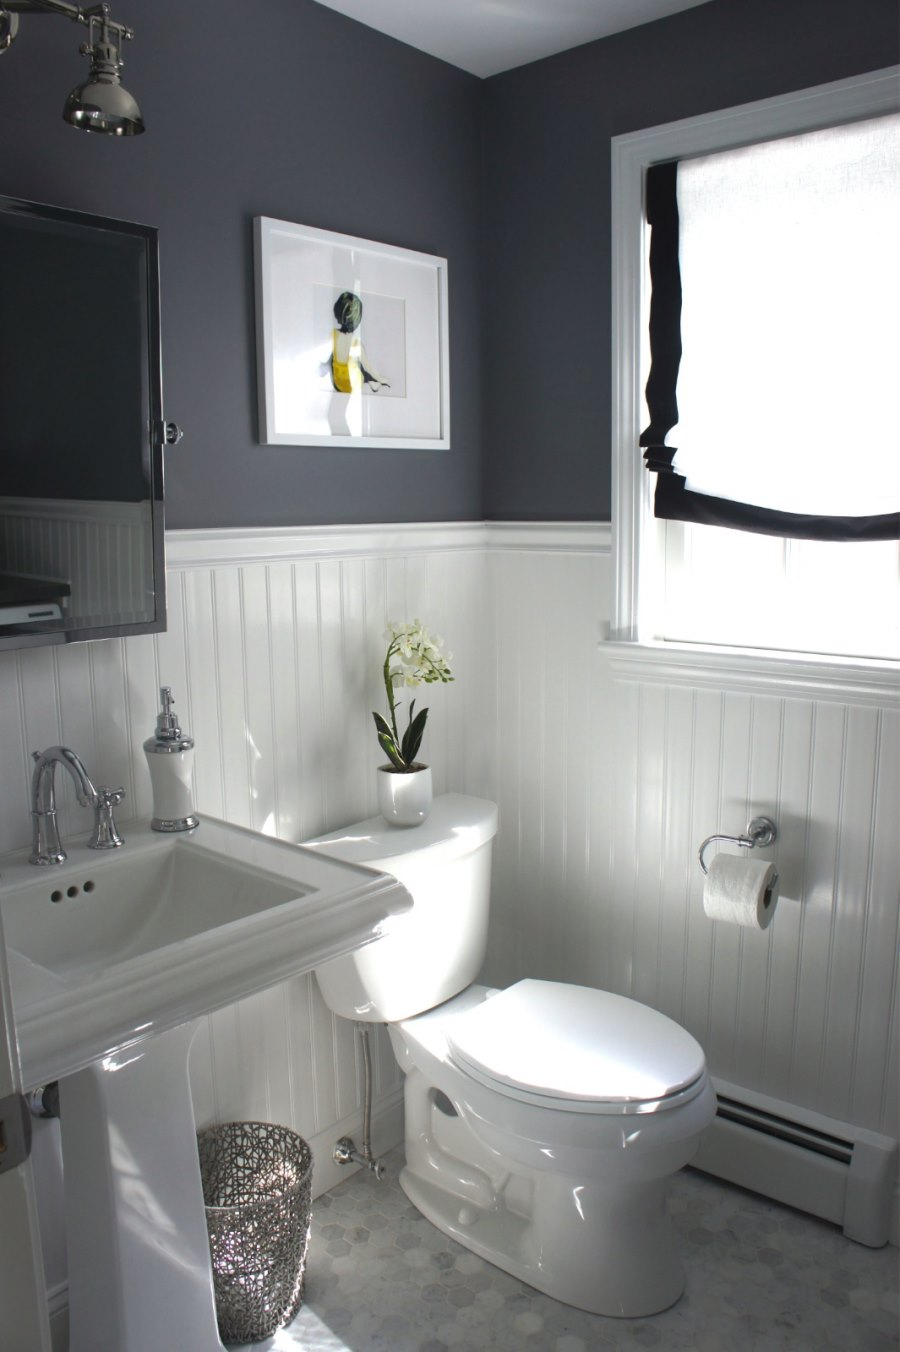 Beadboard paneling in a grey bathroom